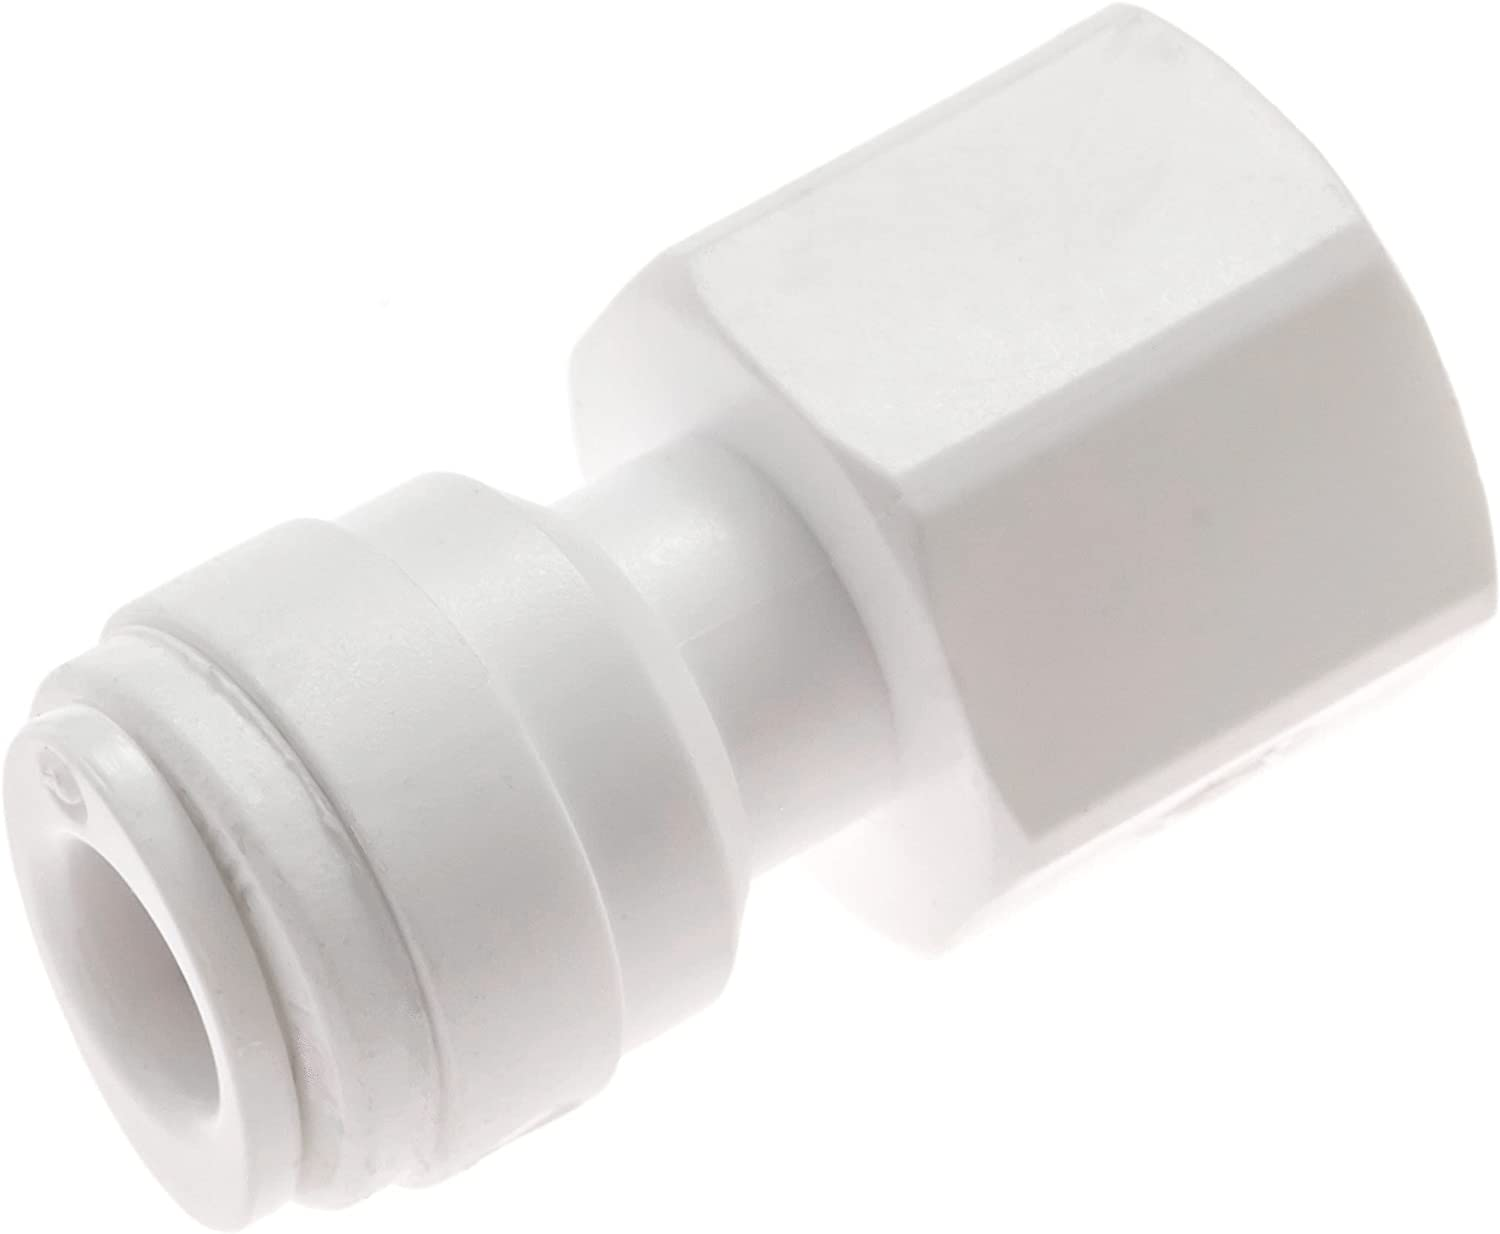 "Avanti 1/4"" tube to 1/4"" NPT Female Connector for drinking water filter RO reverse osmosis - 1/4"" tube x 1/4"" NPT Female quick-connect fittings - QF-FC0404 (Pack of 1)"